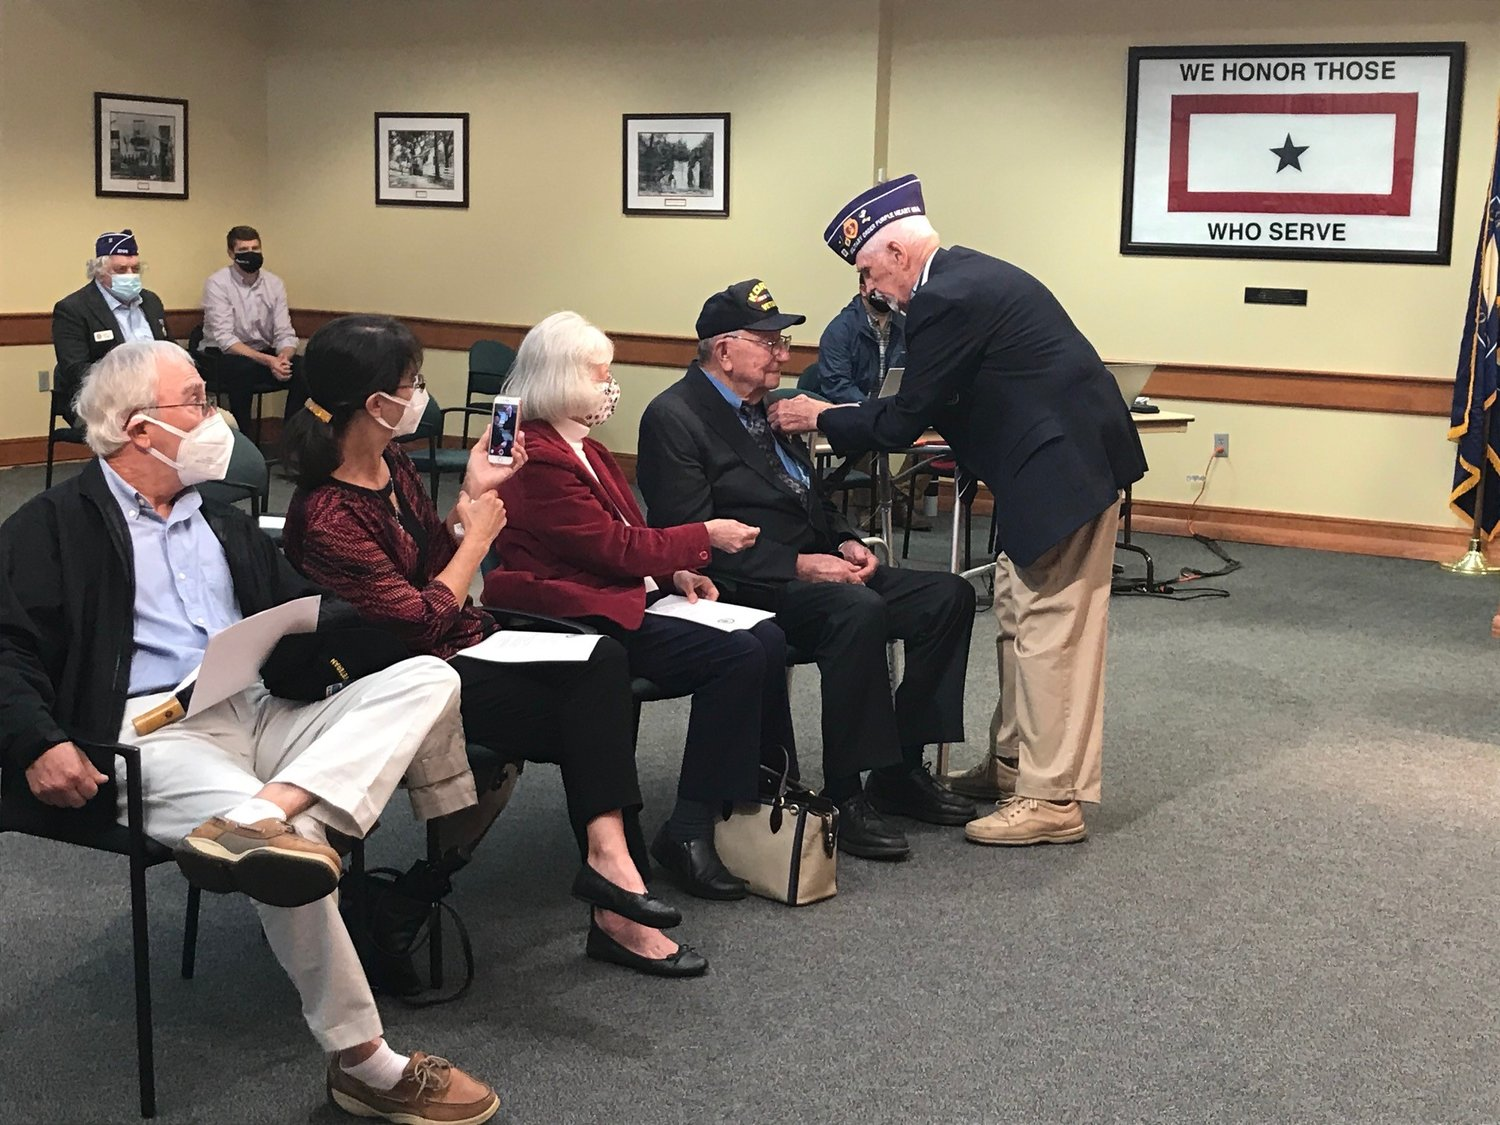 Bill Silcox receives his Purple Heart medal almost 69 years after being wounded in the Korean War.